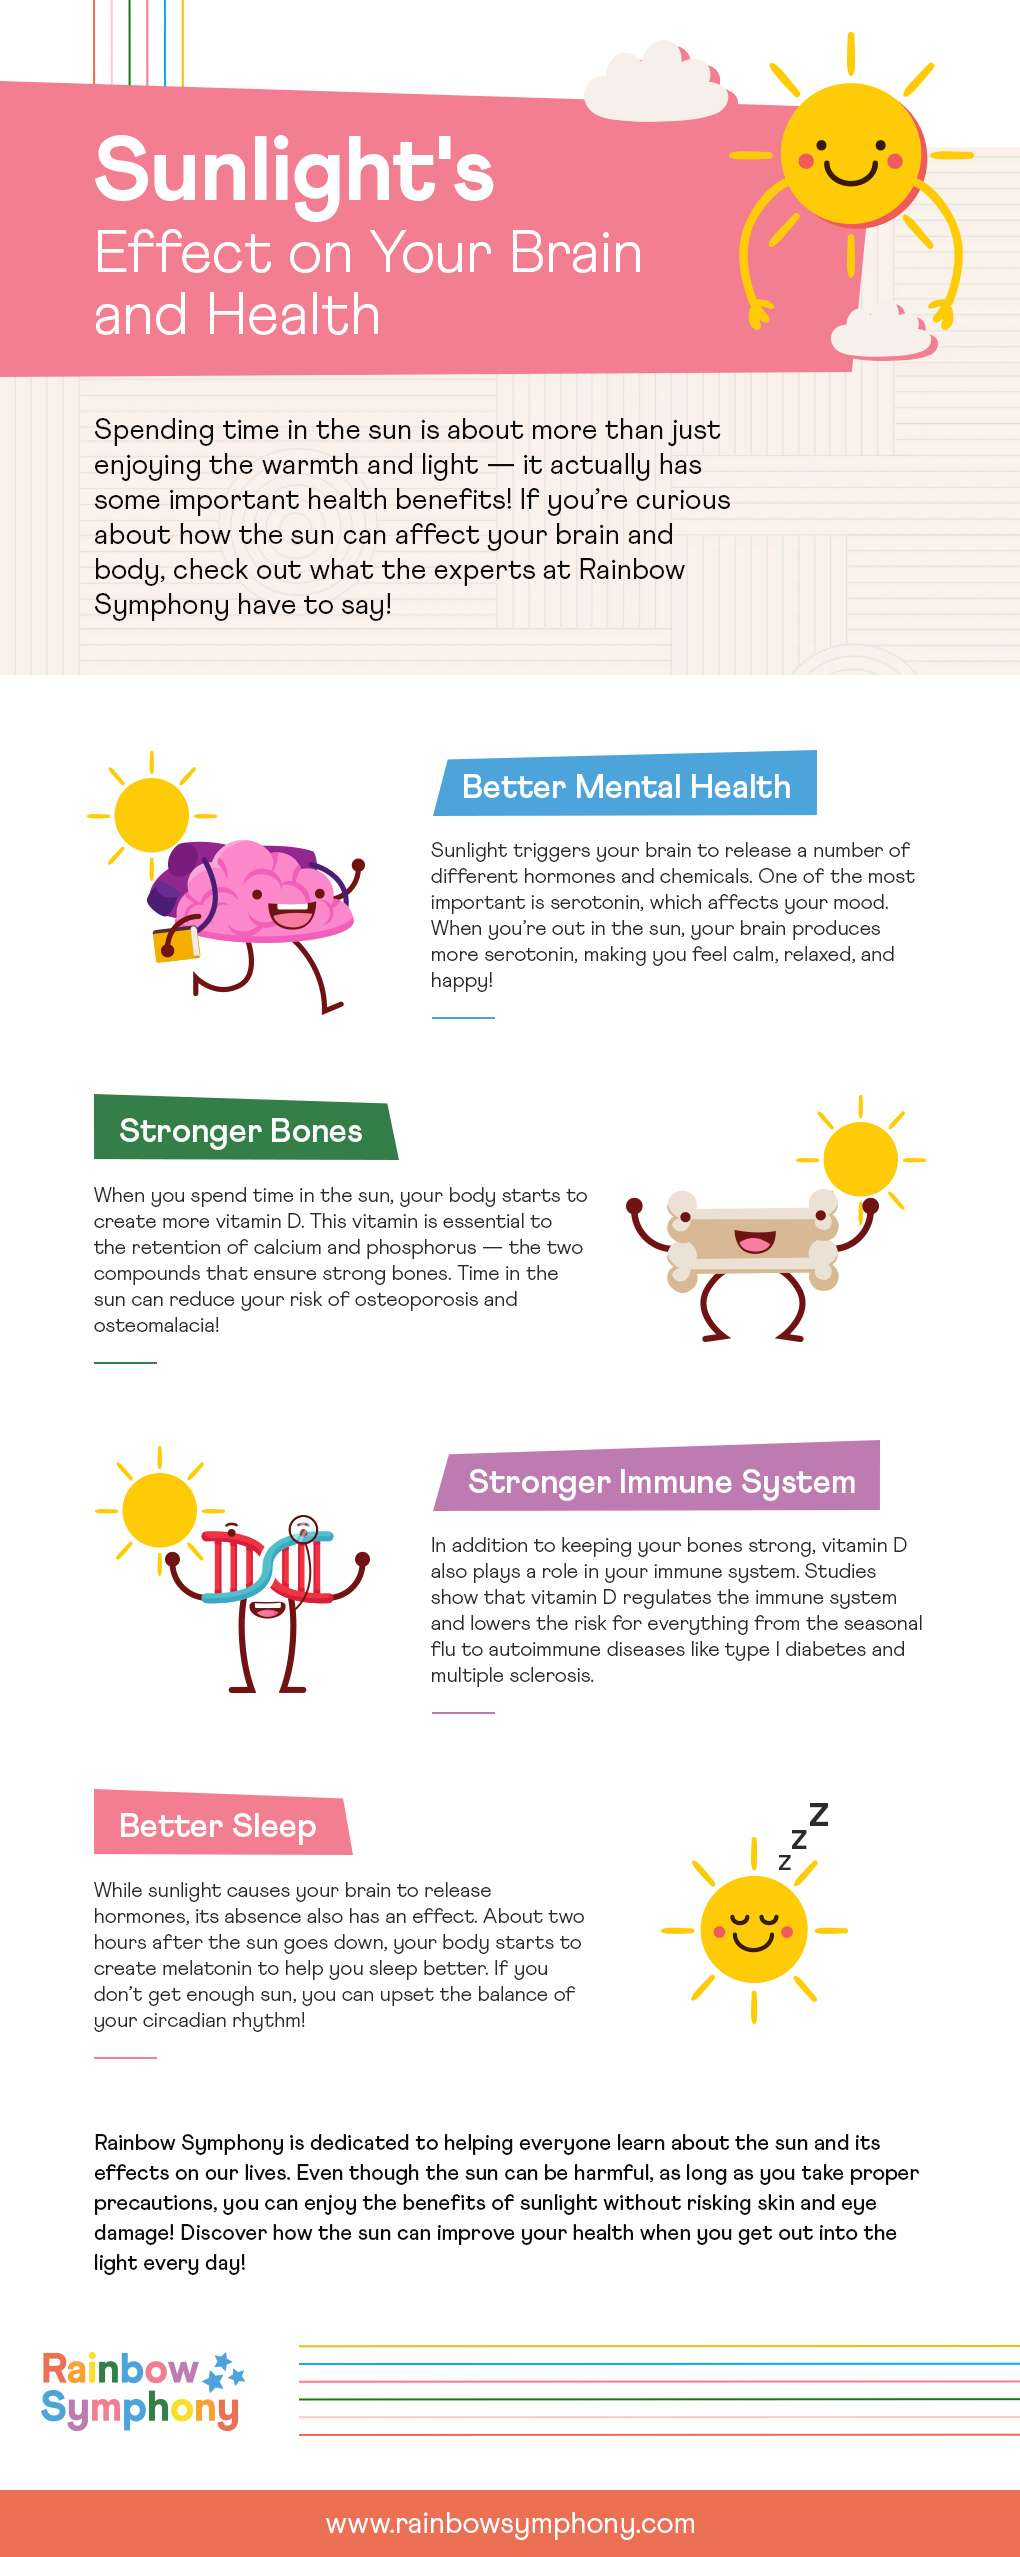 A Rainbow Symphony infographic on sunlight's effect on your brain and health